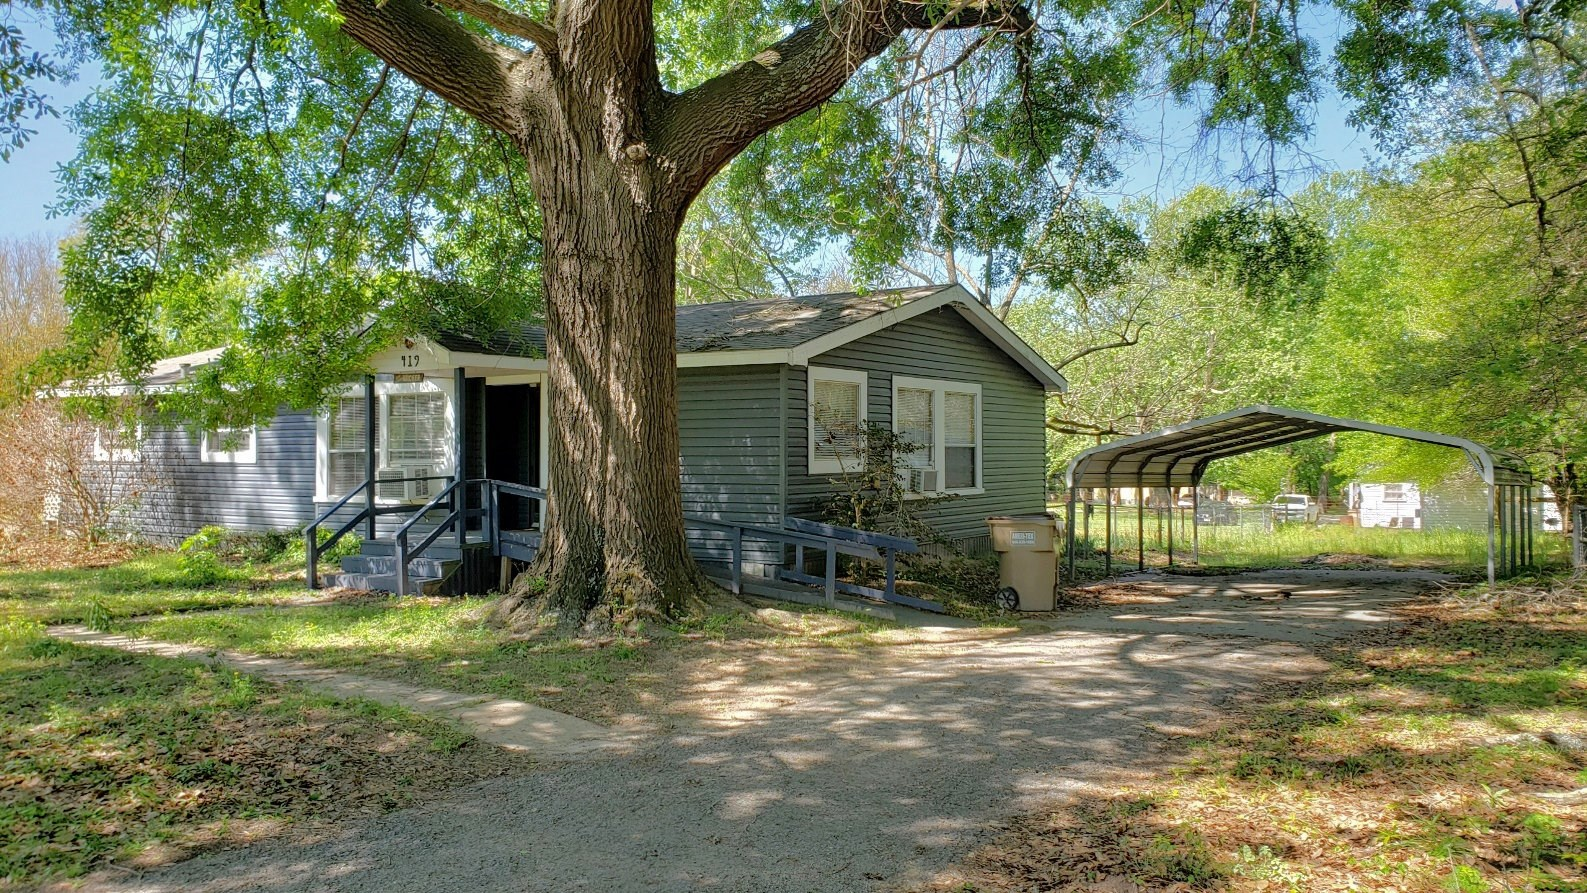 DOUBLE WIDE MOBILE HOME FOR SALE IN FRANKSTON TX | EAST TX